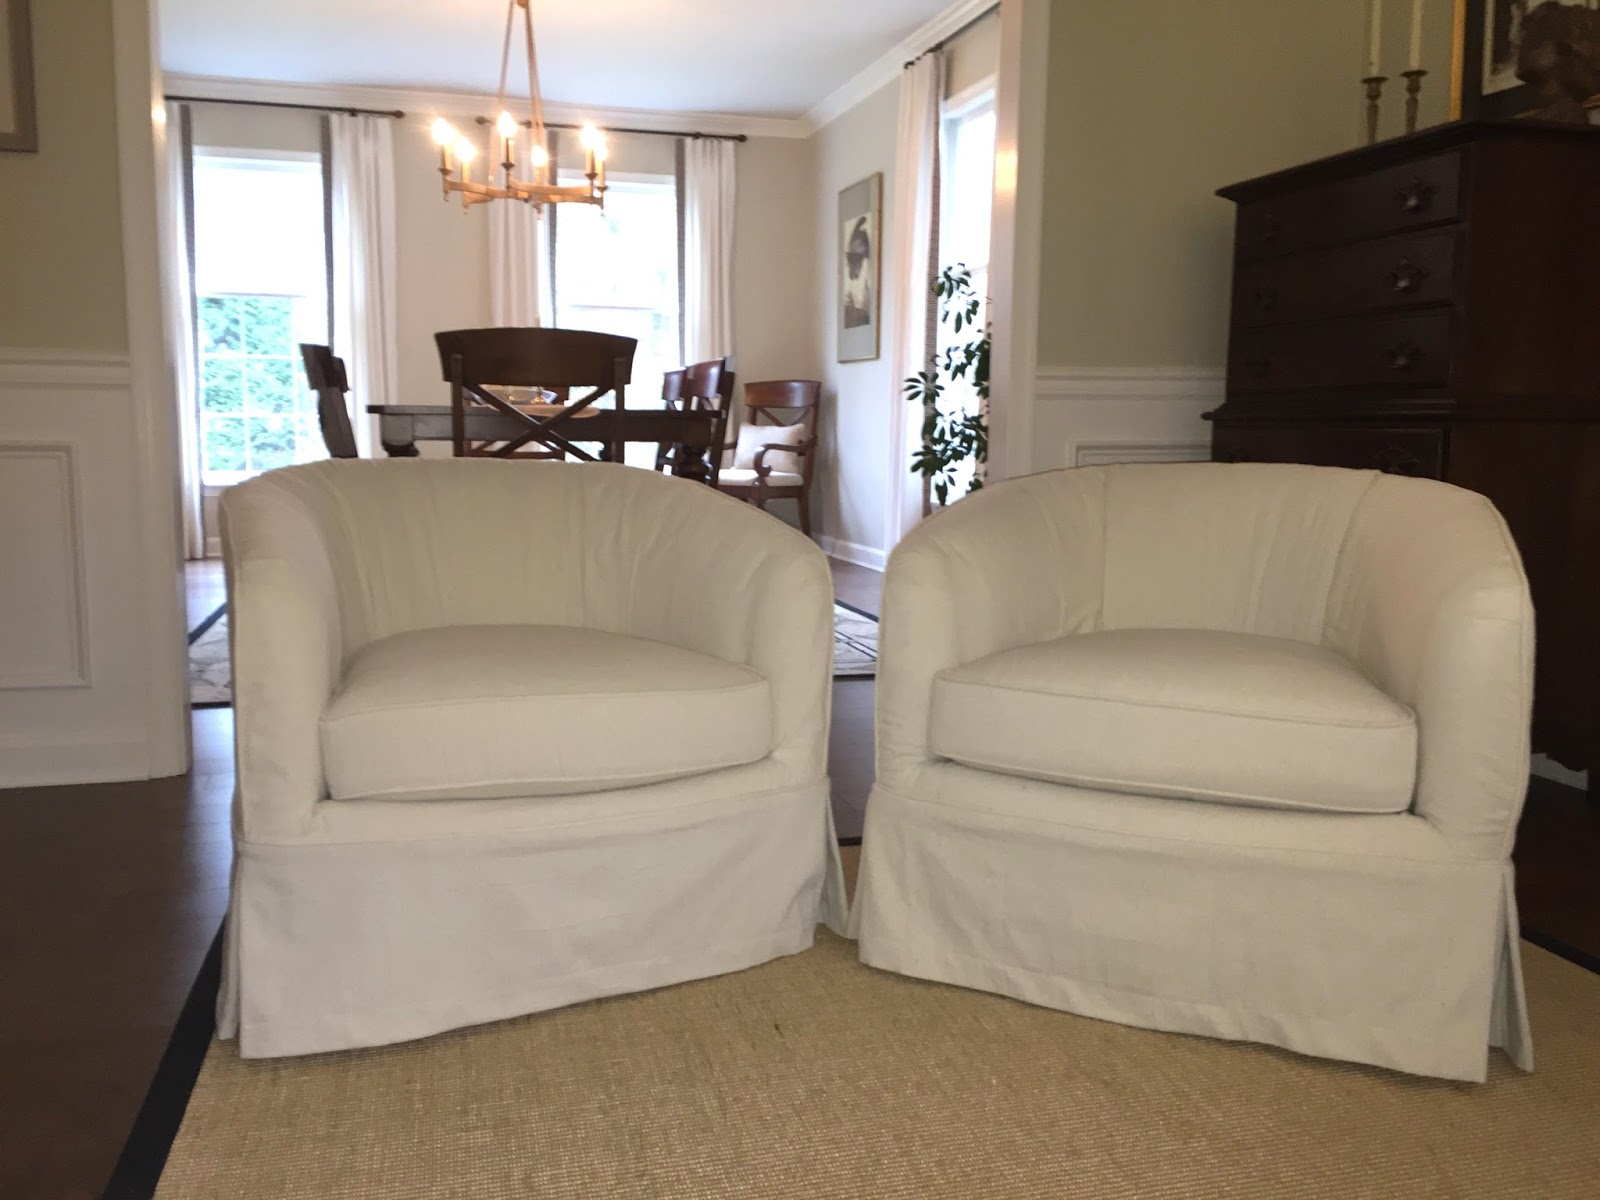 barrel swivel chair slipcover vintage bistro table and chairs pam morris sews dramatic rescue with drop cloths